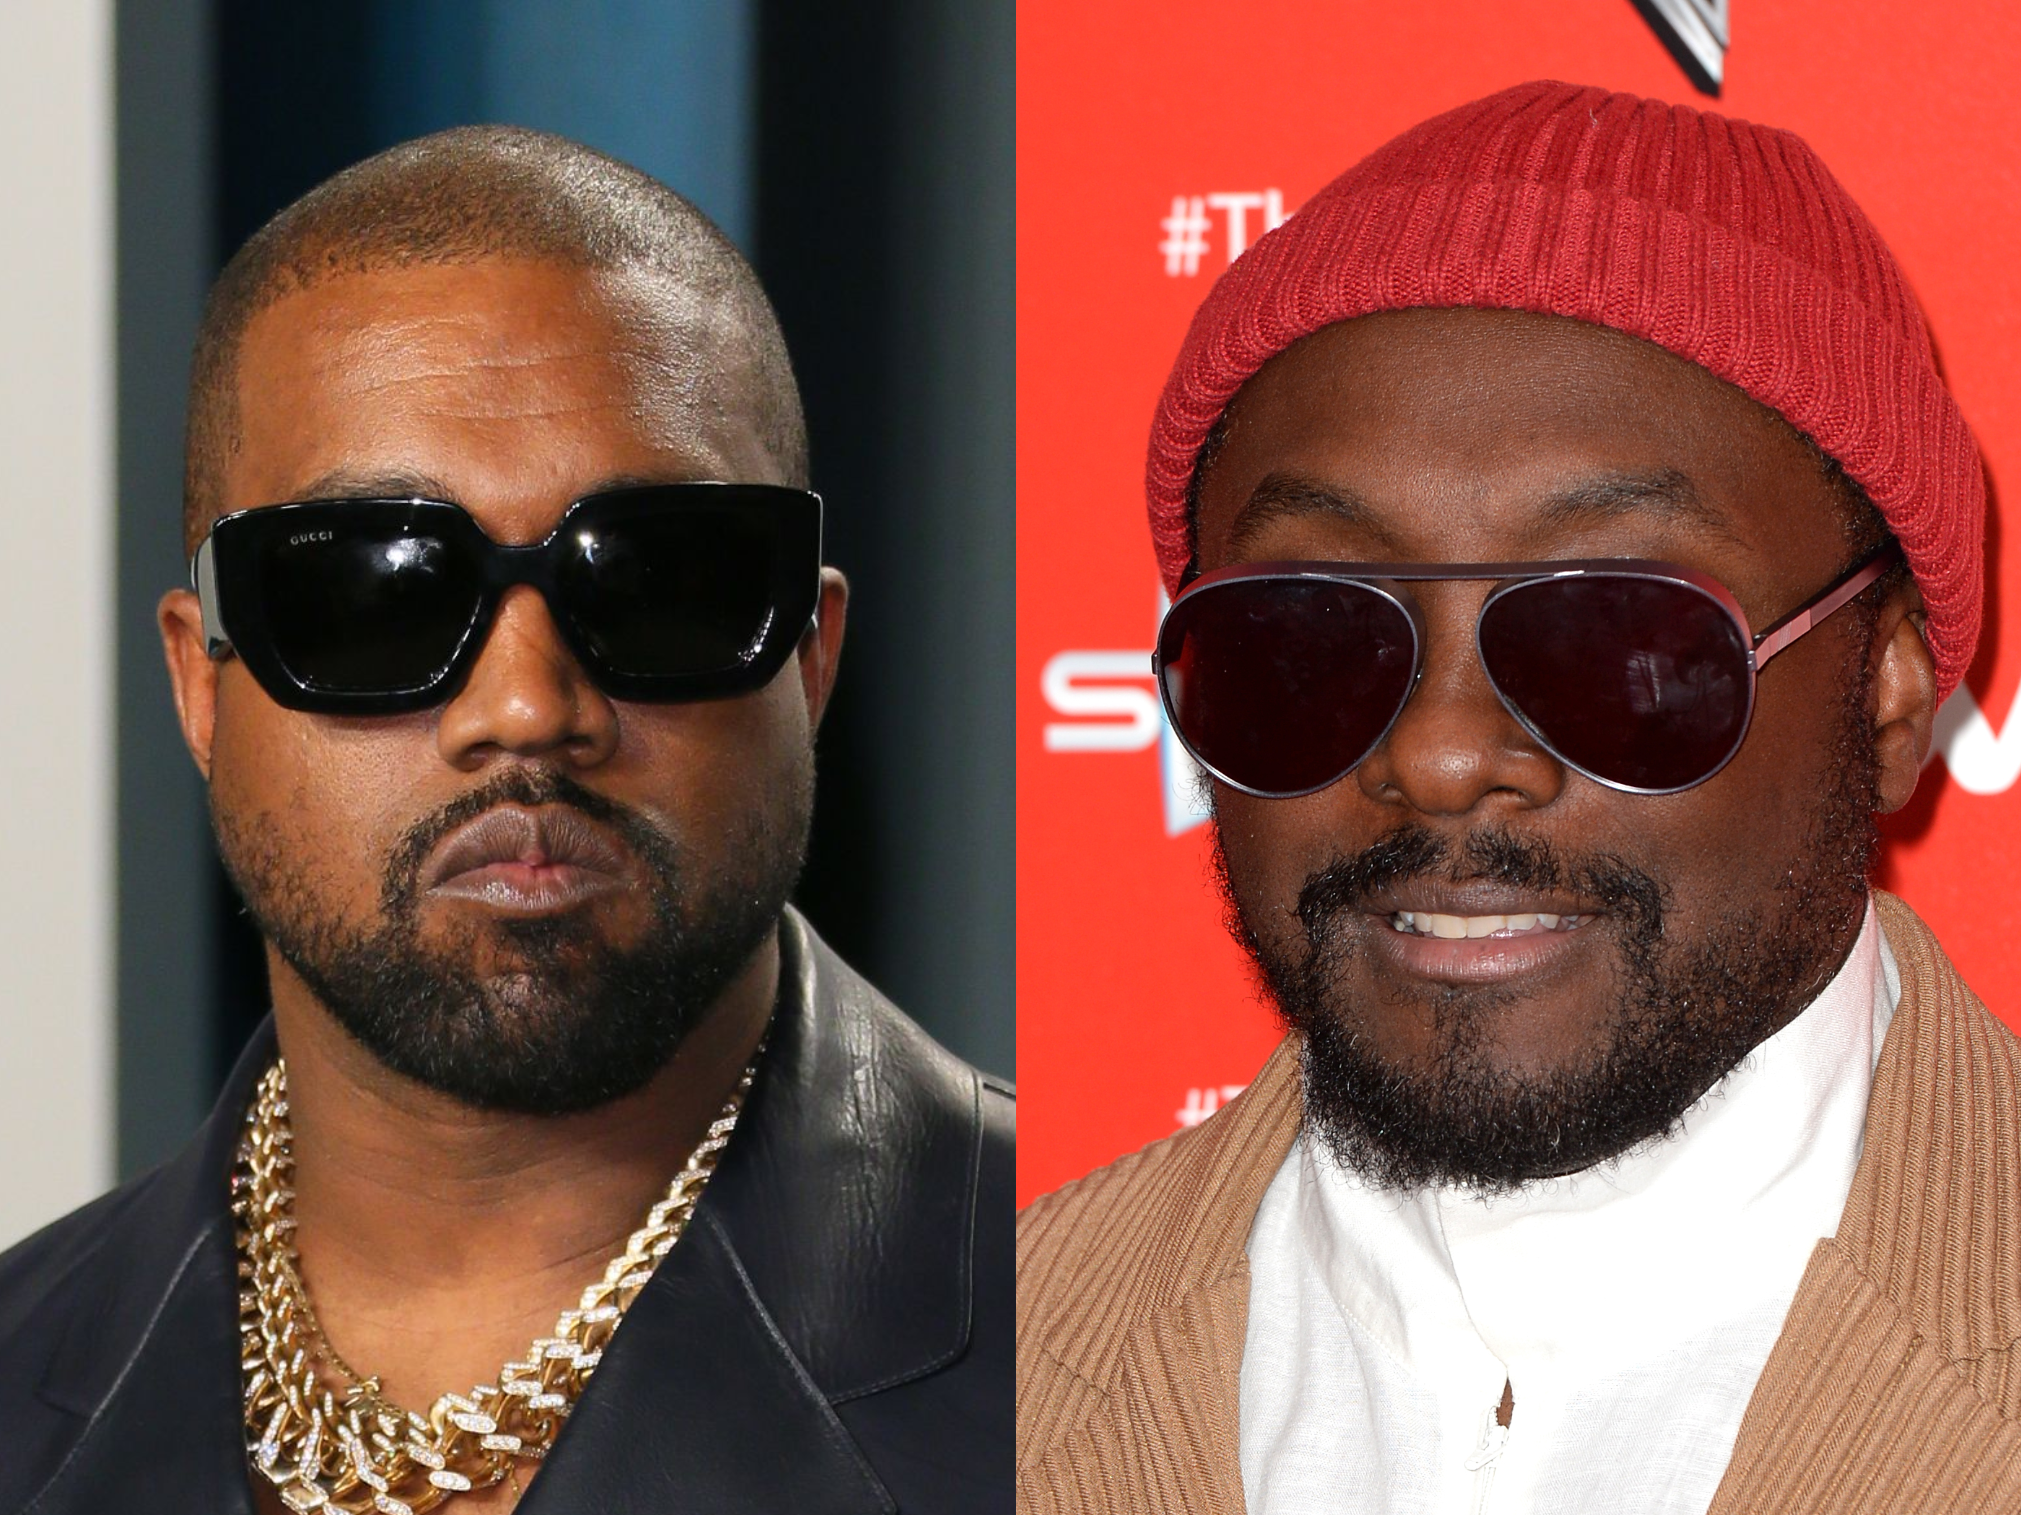 Will.i.am criticises Kanye West's presidential bid: 'It's a dangerous thing to be playing with'